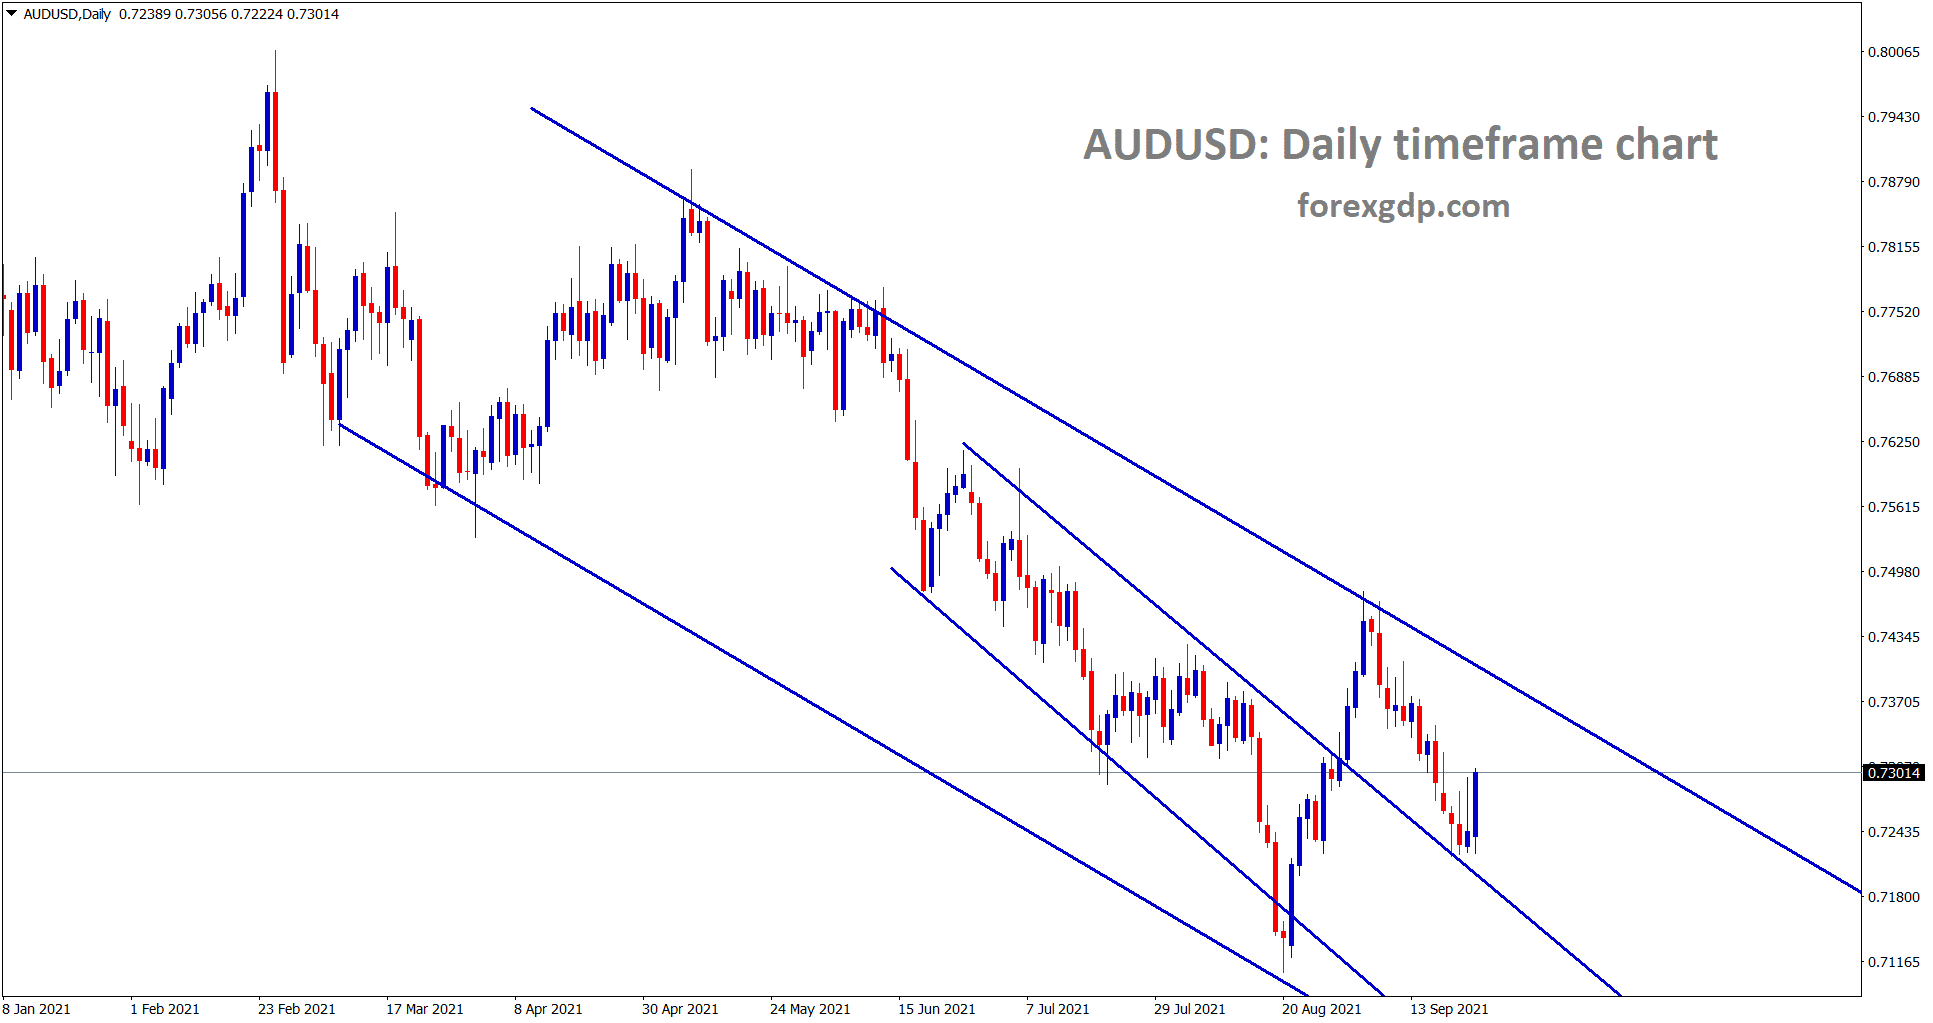 AUDUSD is rebounding from the minor channel retest zone